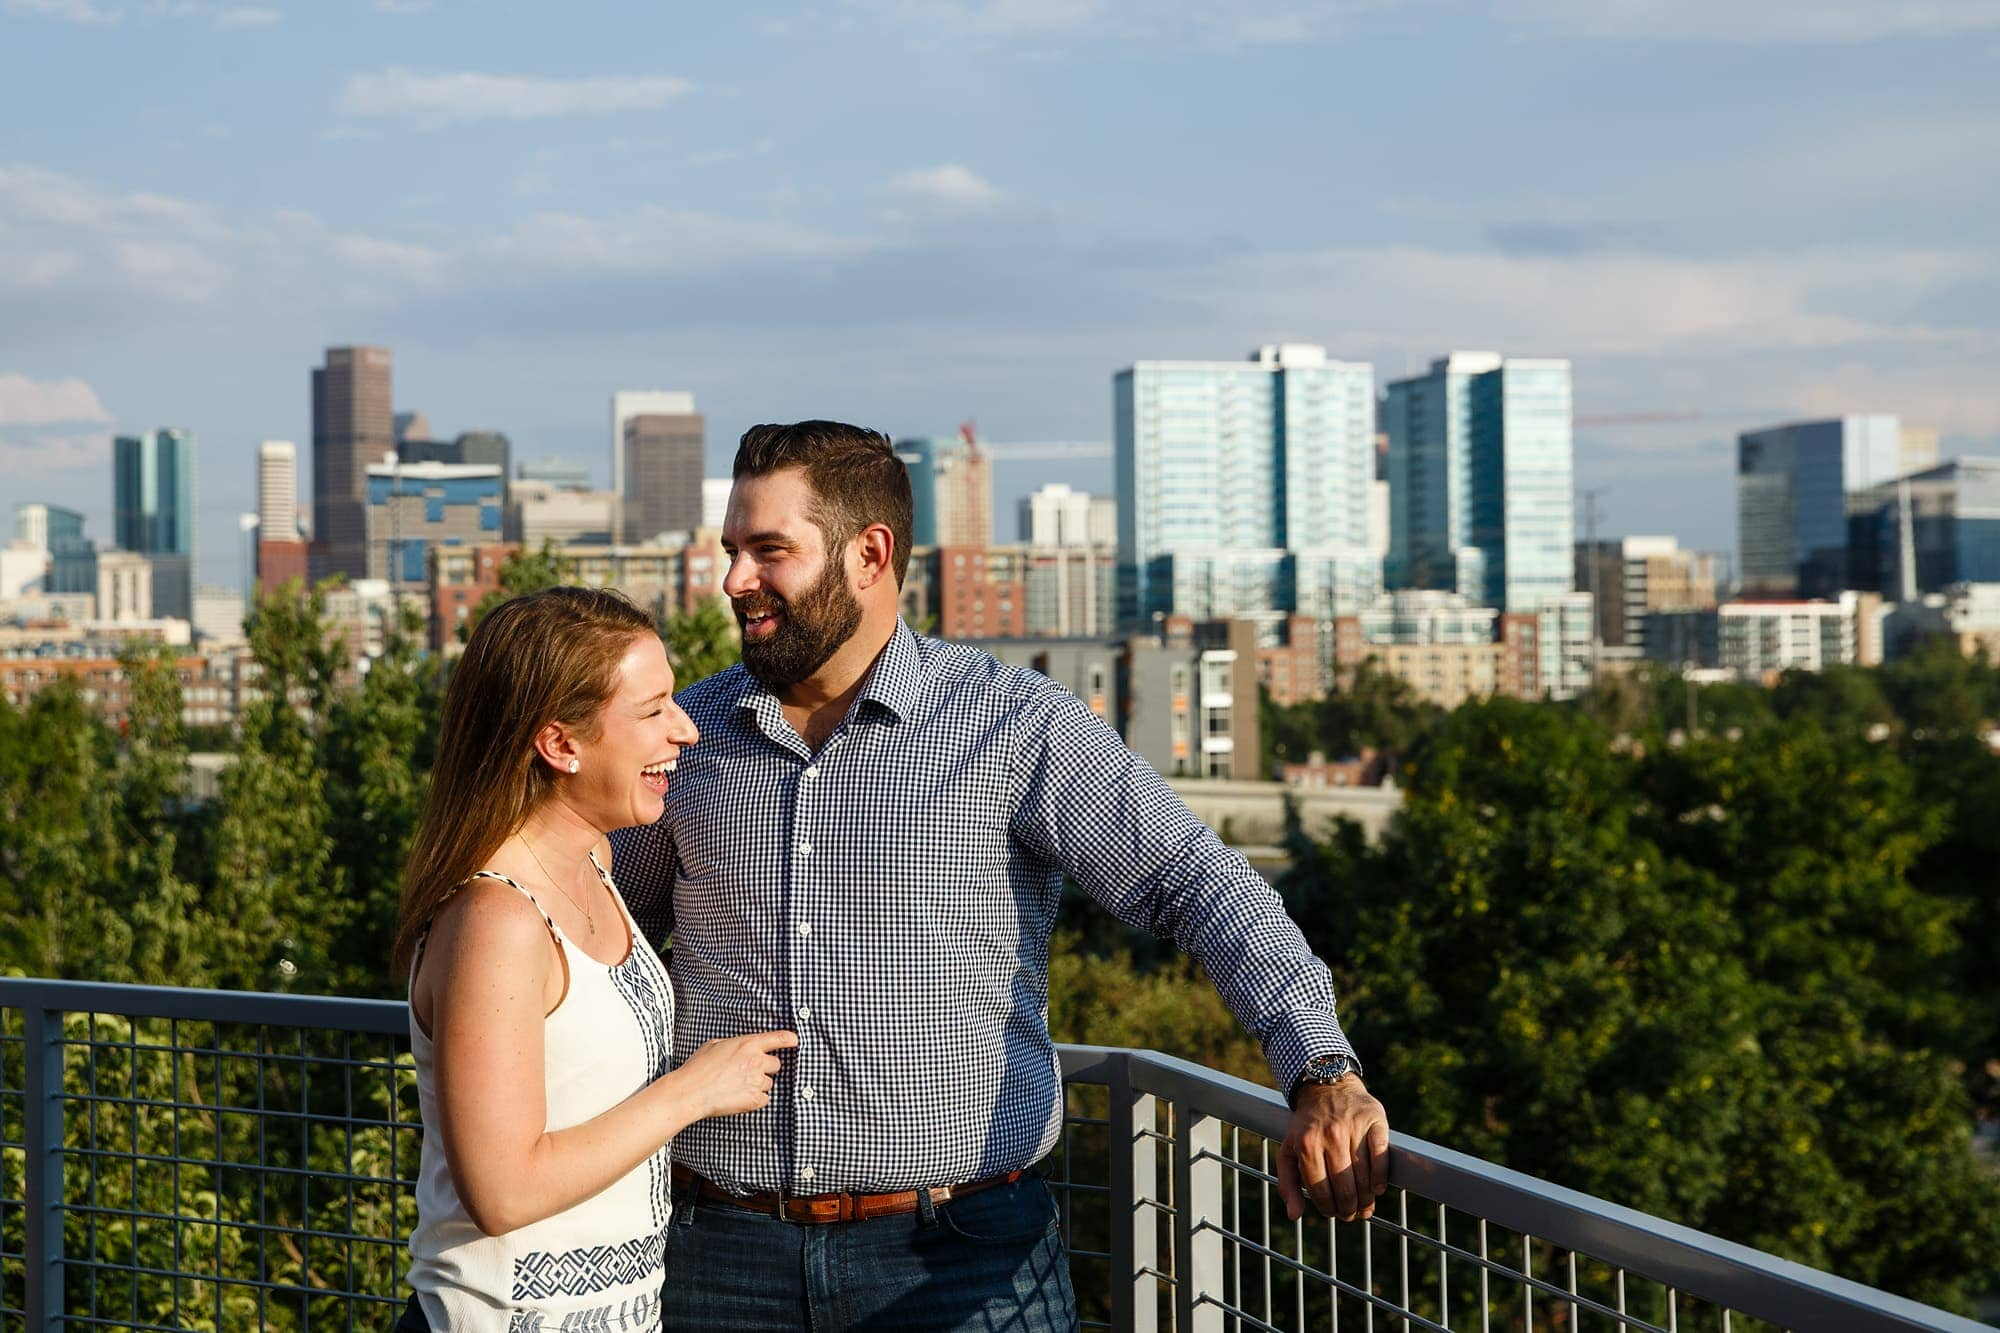 Devan and Josh share a laugh at Avanti in the LoHi neighborhood during their engagement session